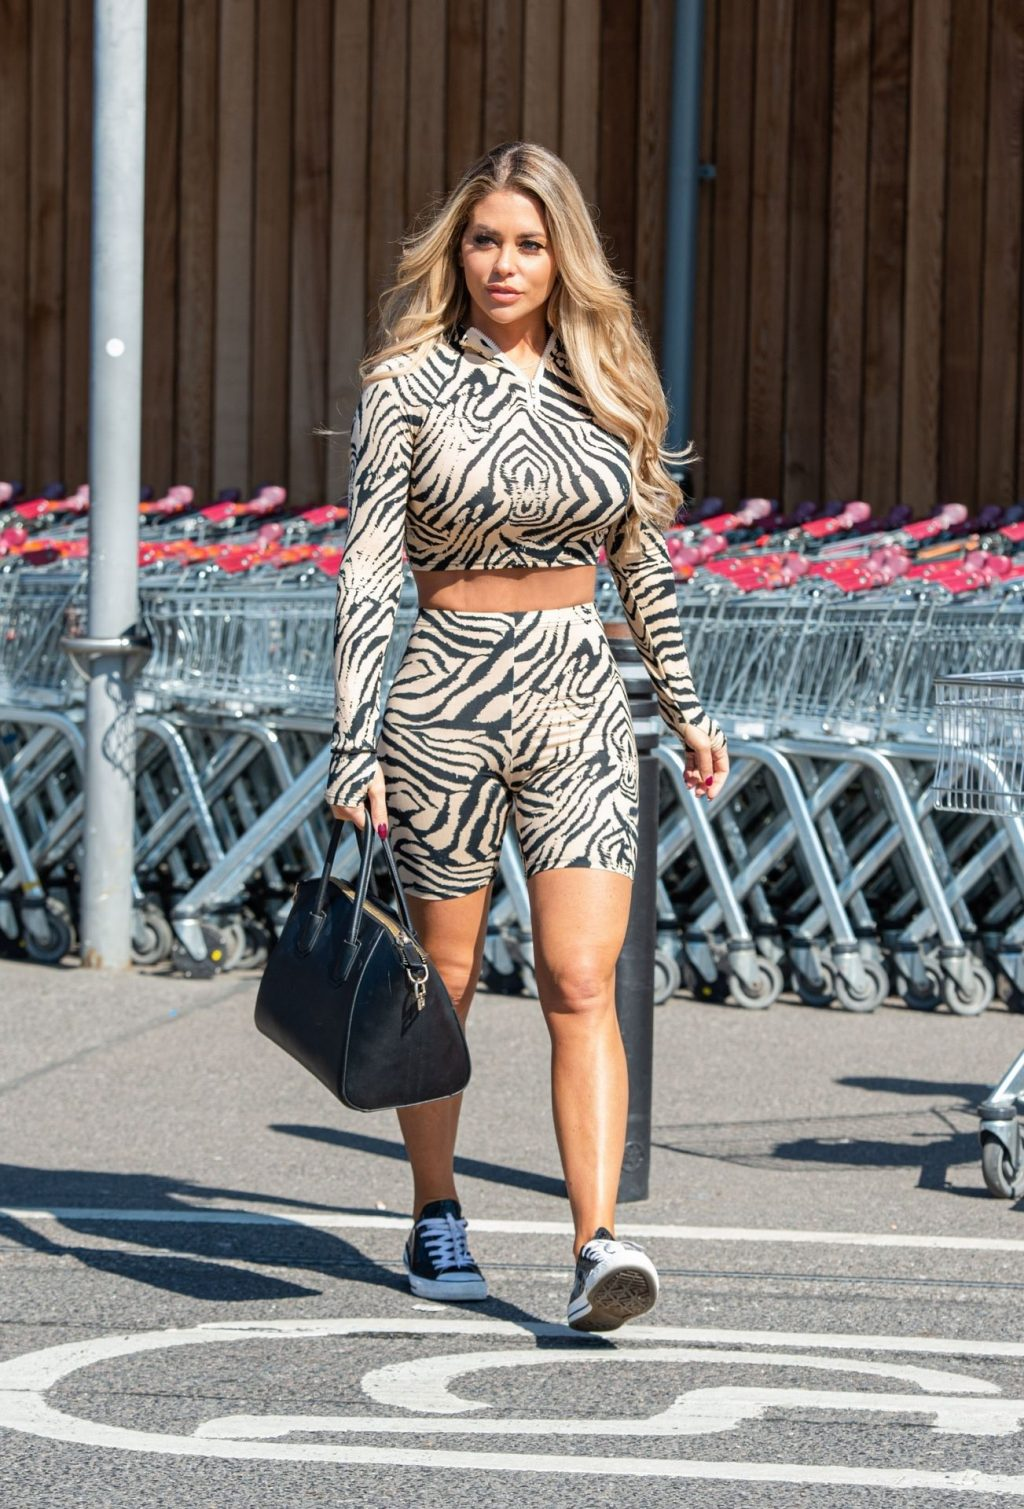 Bianca Gascoigne Was Seen at Sainsbury's in Gravesend (15 Photos)